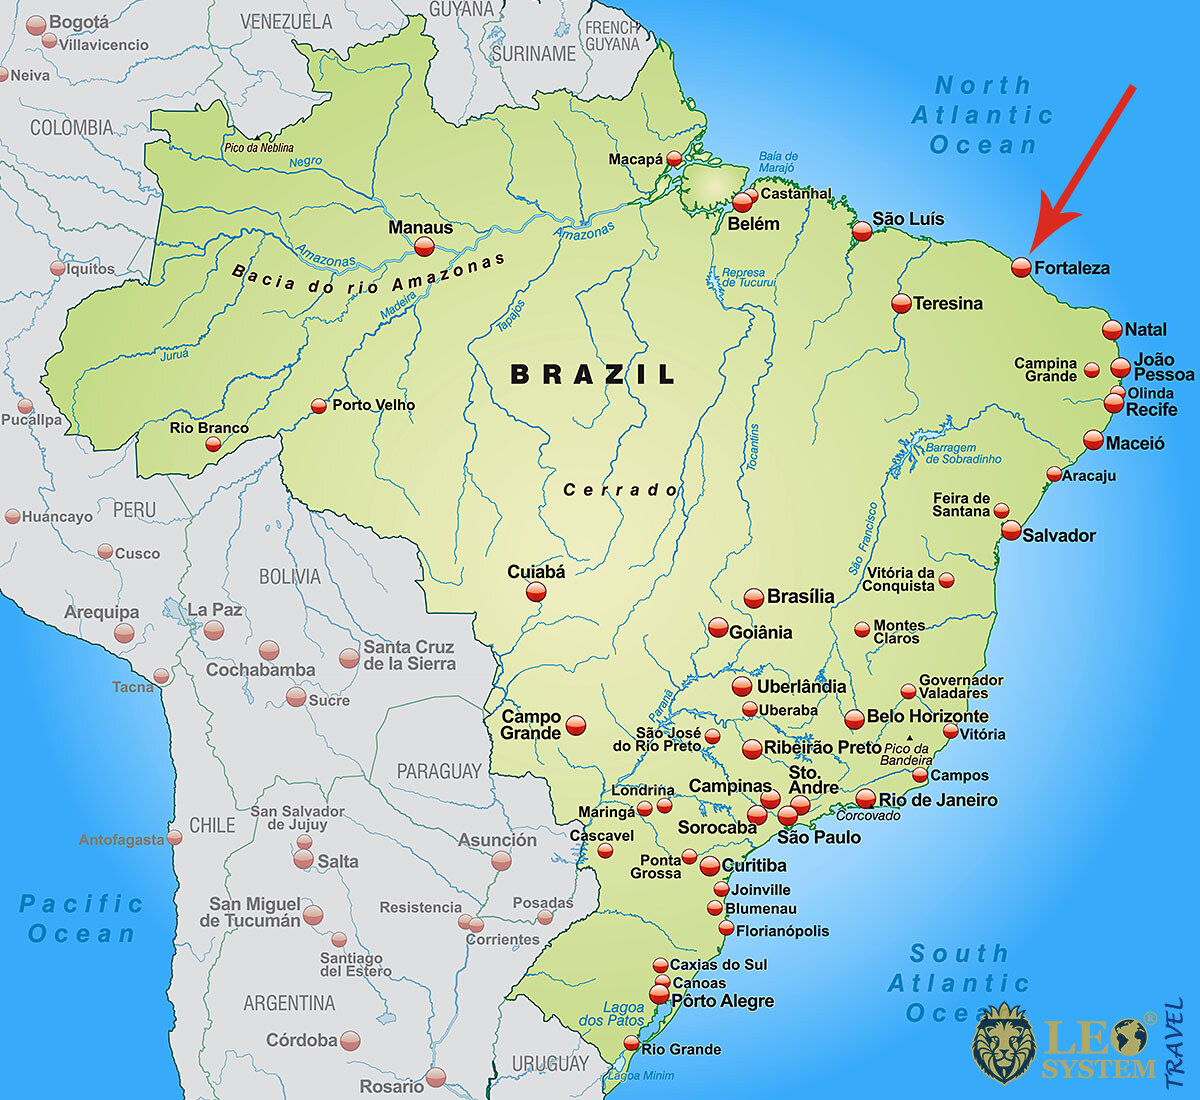 Image of a map showing the location of the city of Fortaleza, Brazil